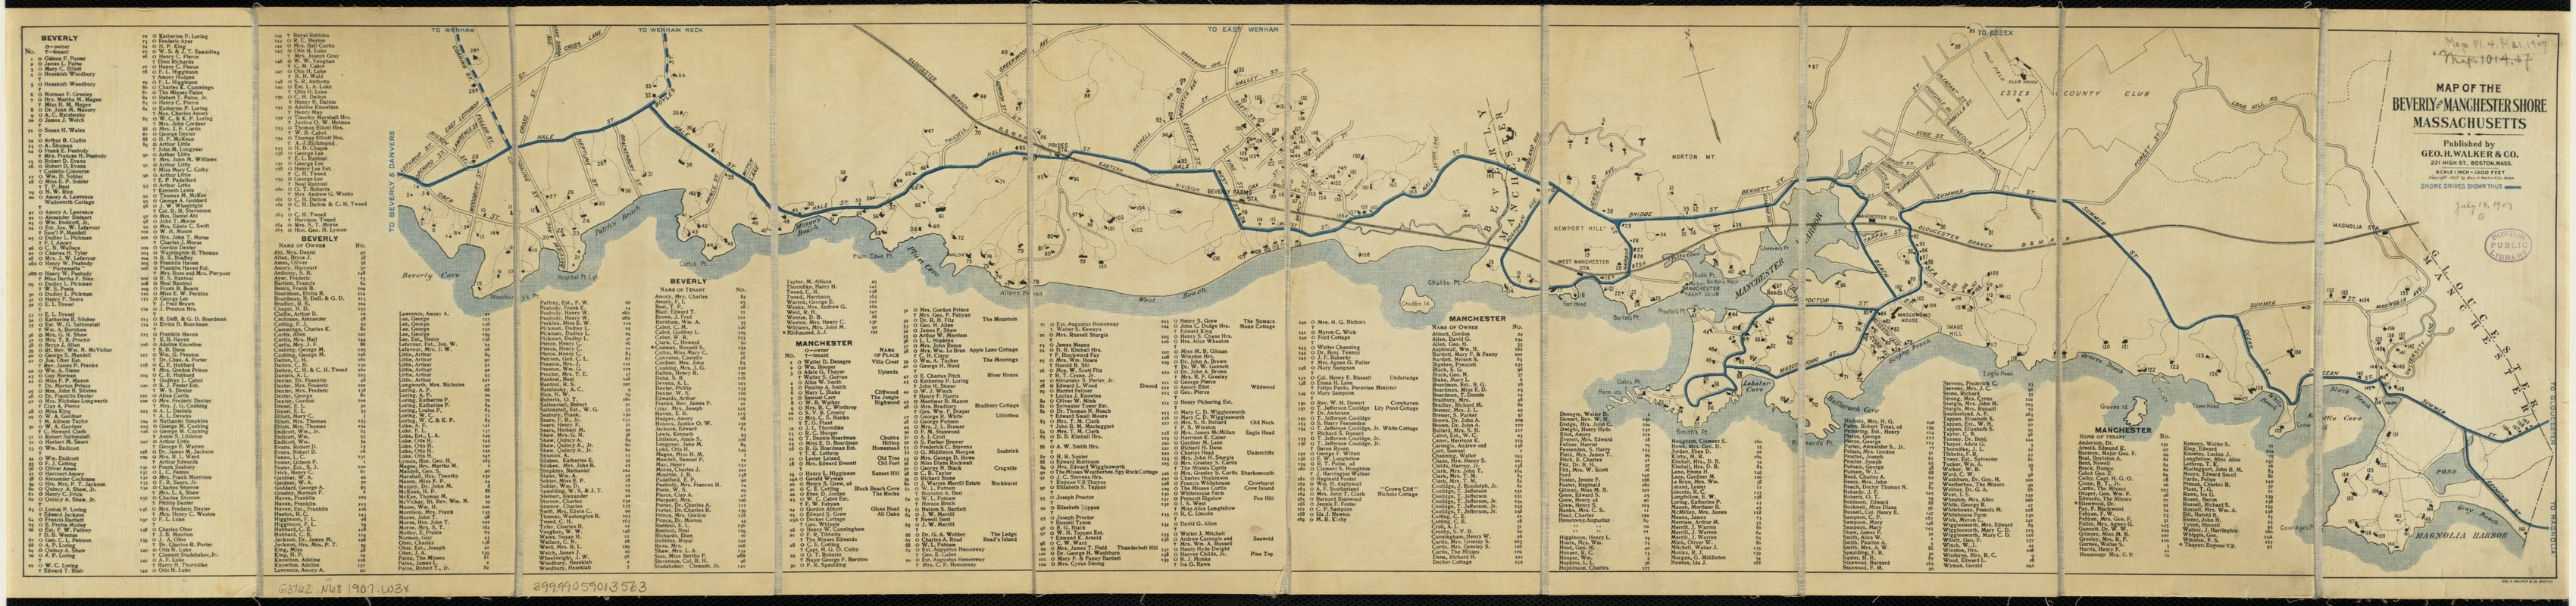 Map of the Beverly and Manchester shore Massachusetts